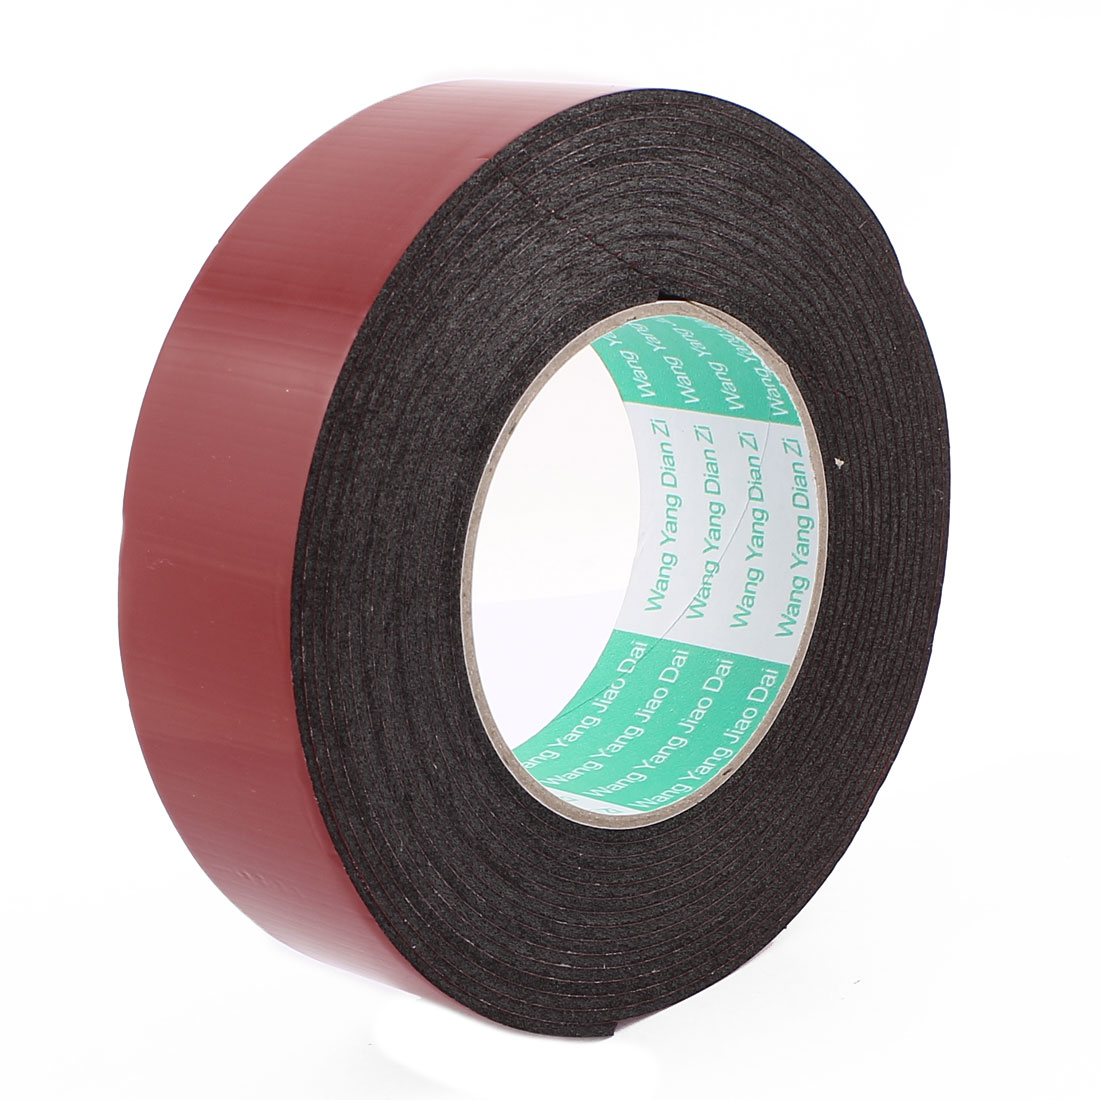 Black Strong Double Sided Adhesive Tape Sponge Tape 40MM Width 5M Long